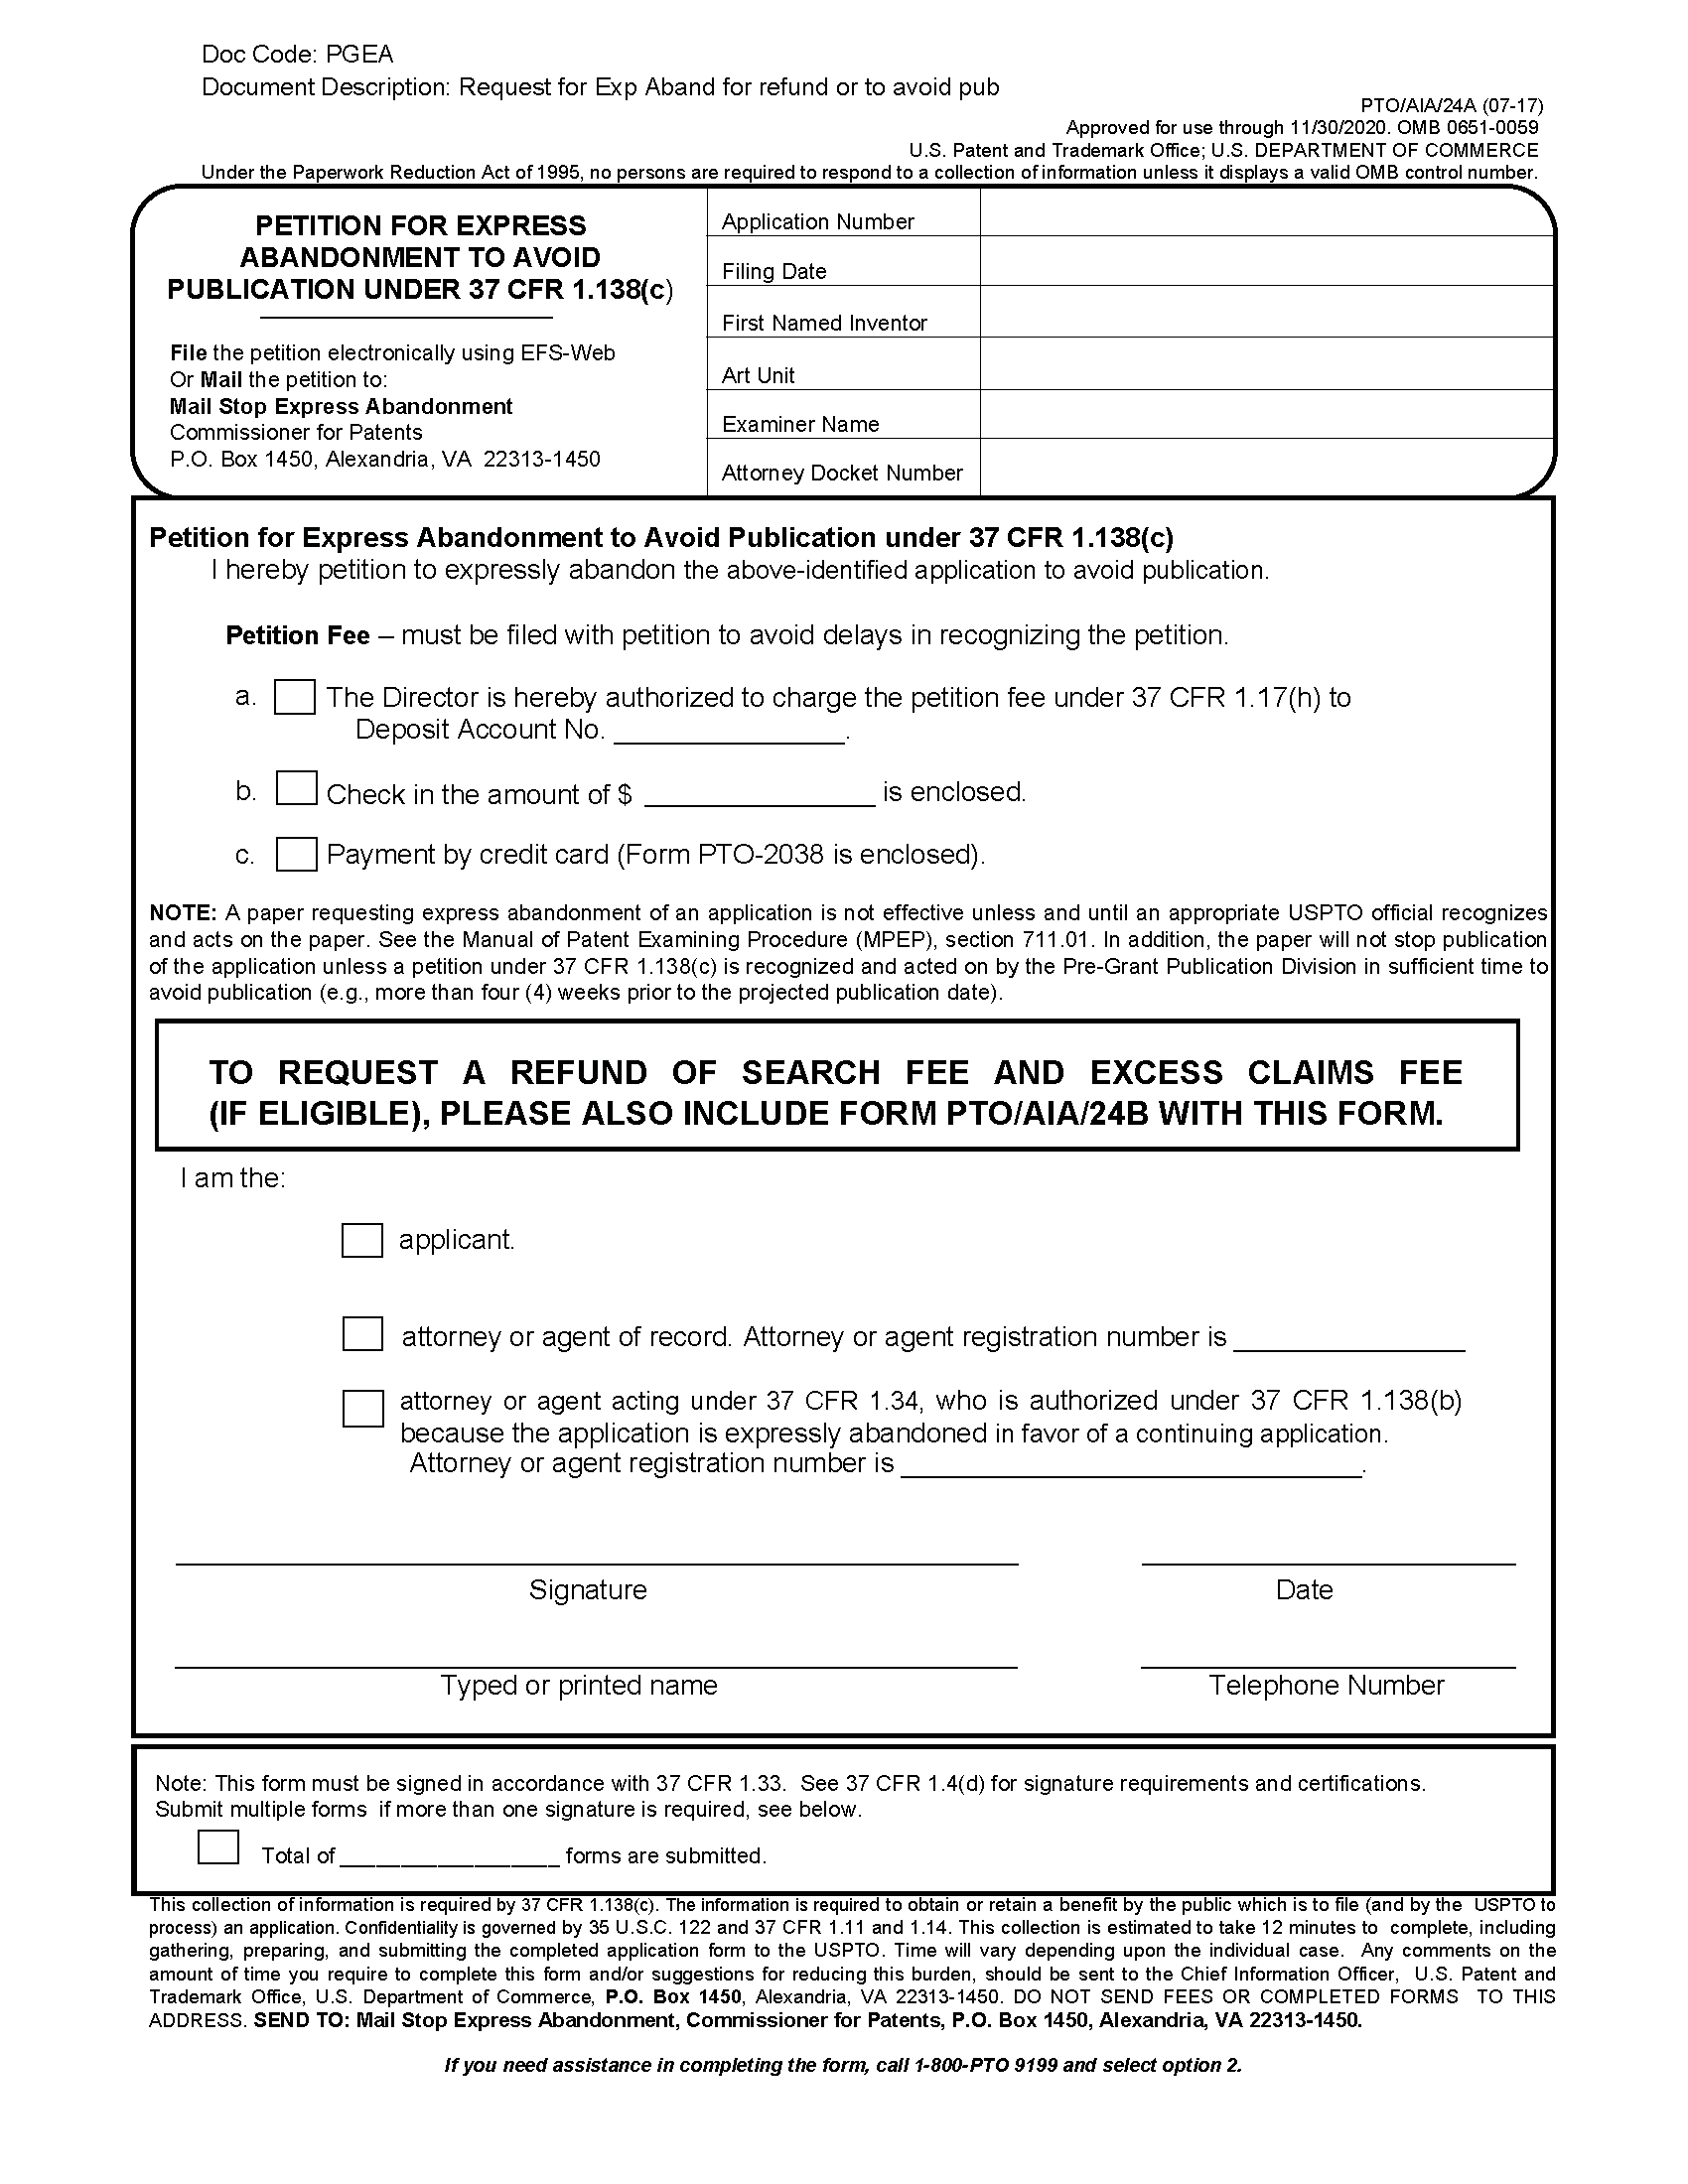 Form PTO/SB/24a Petition For Express Abandonment To Avoid Publication Under  37 CFR